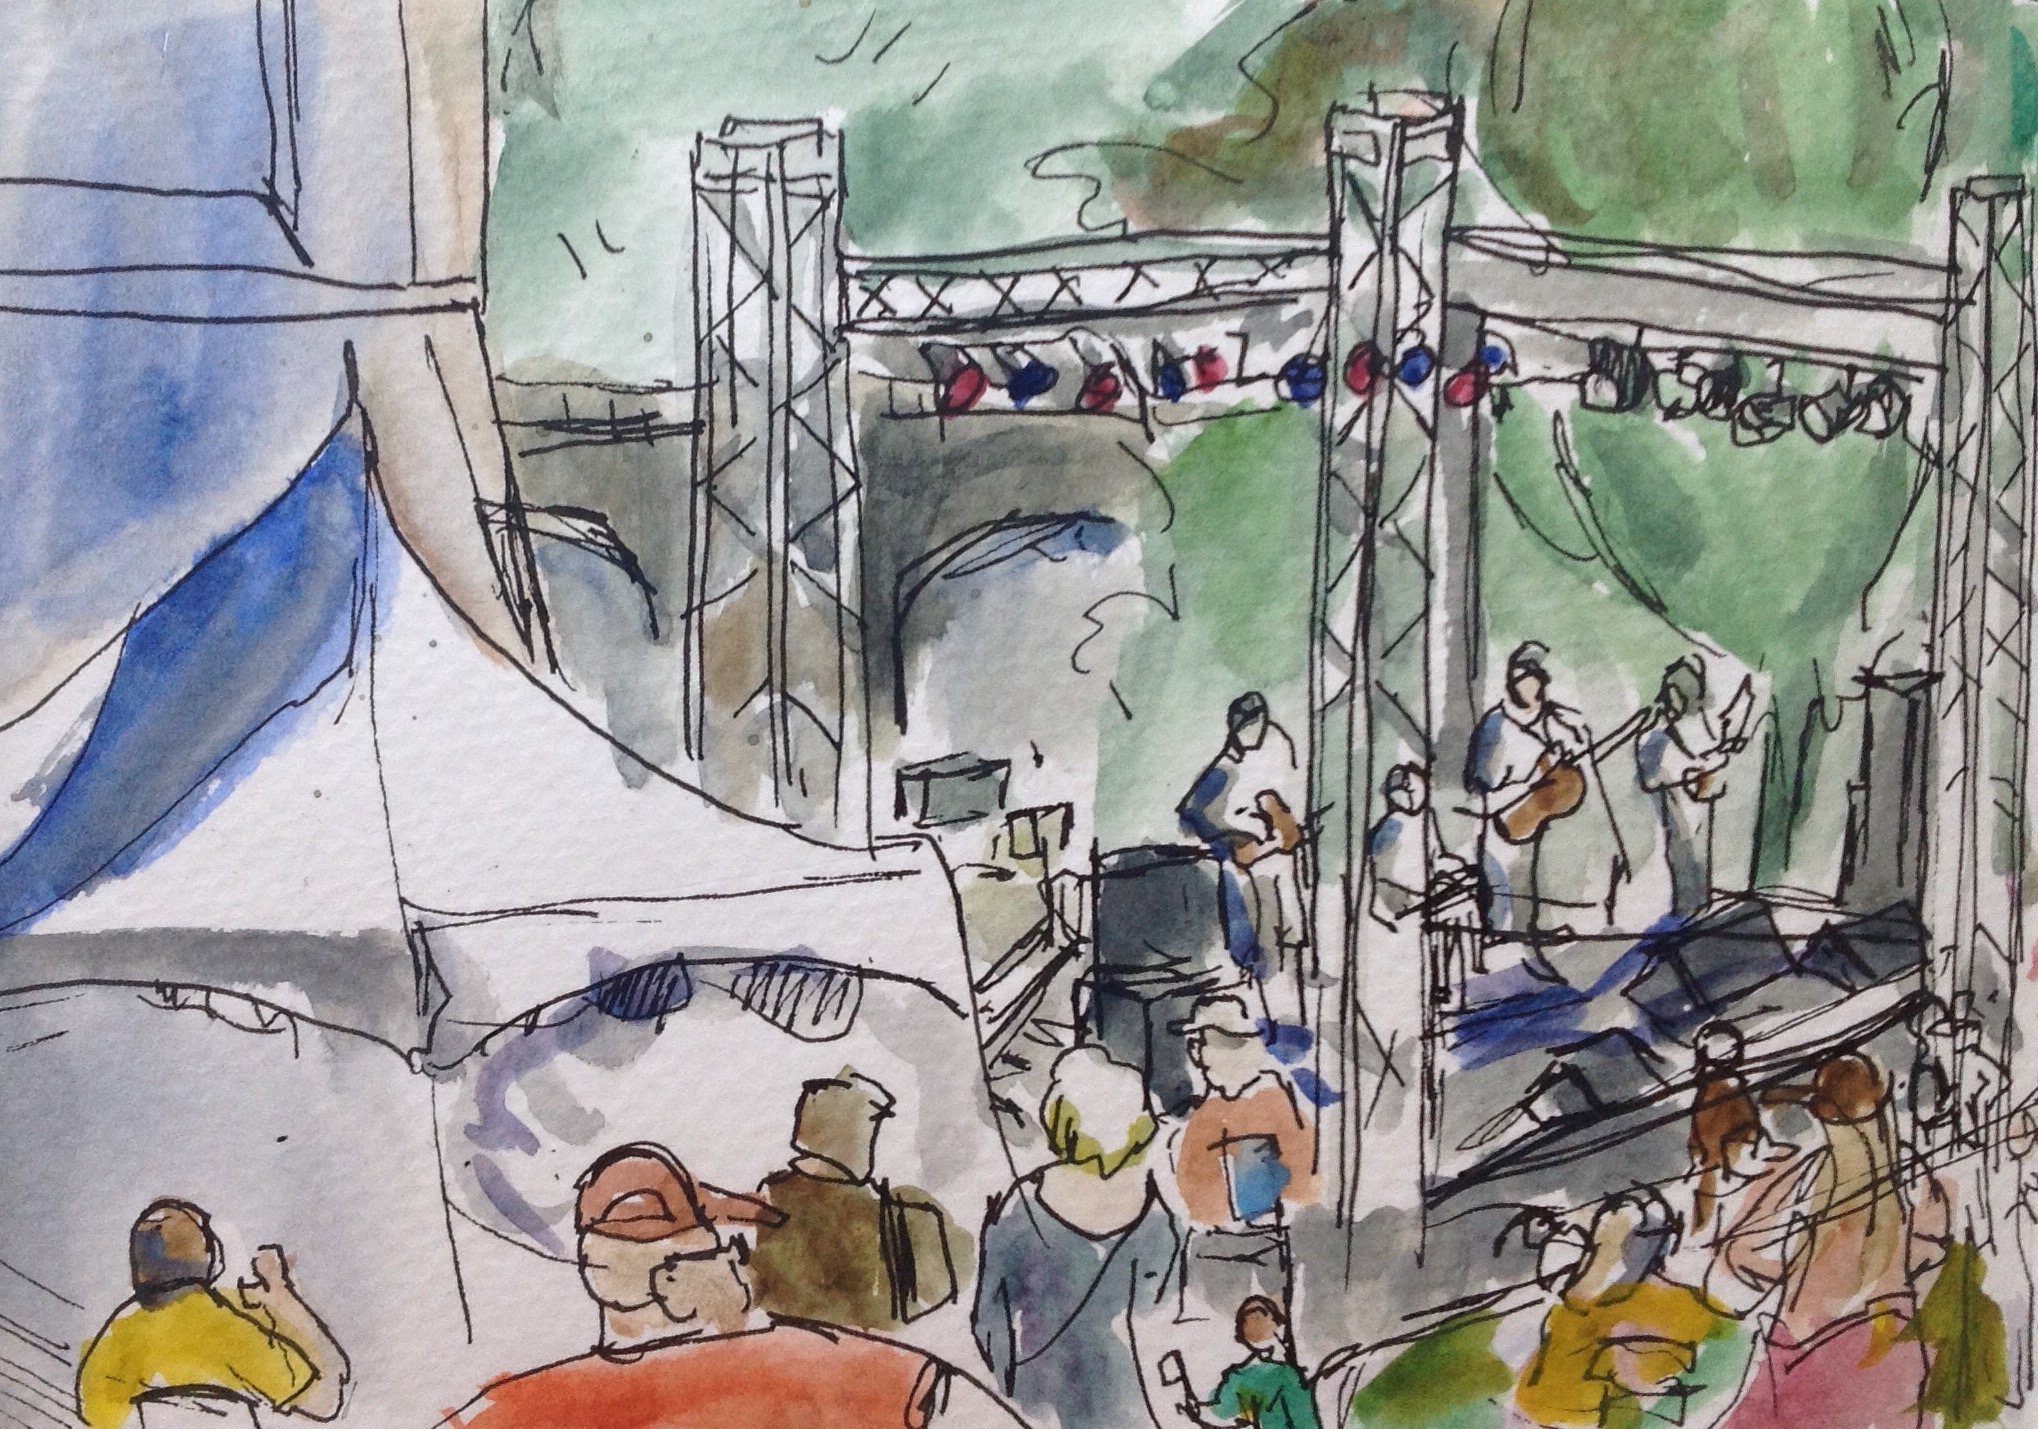 Here is a sketch of a concert at the Clock Tower field at last year's Pig Out in the Park.    Did any of you go to Pig Out in the Park? What was your favorite thing to eat? I had a gyro, but was sorely tempted by a block of fries!